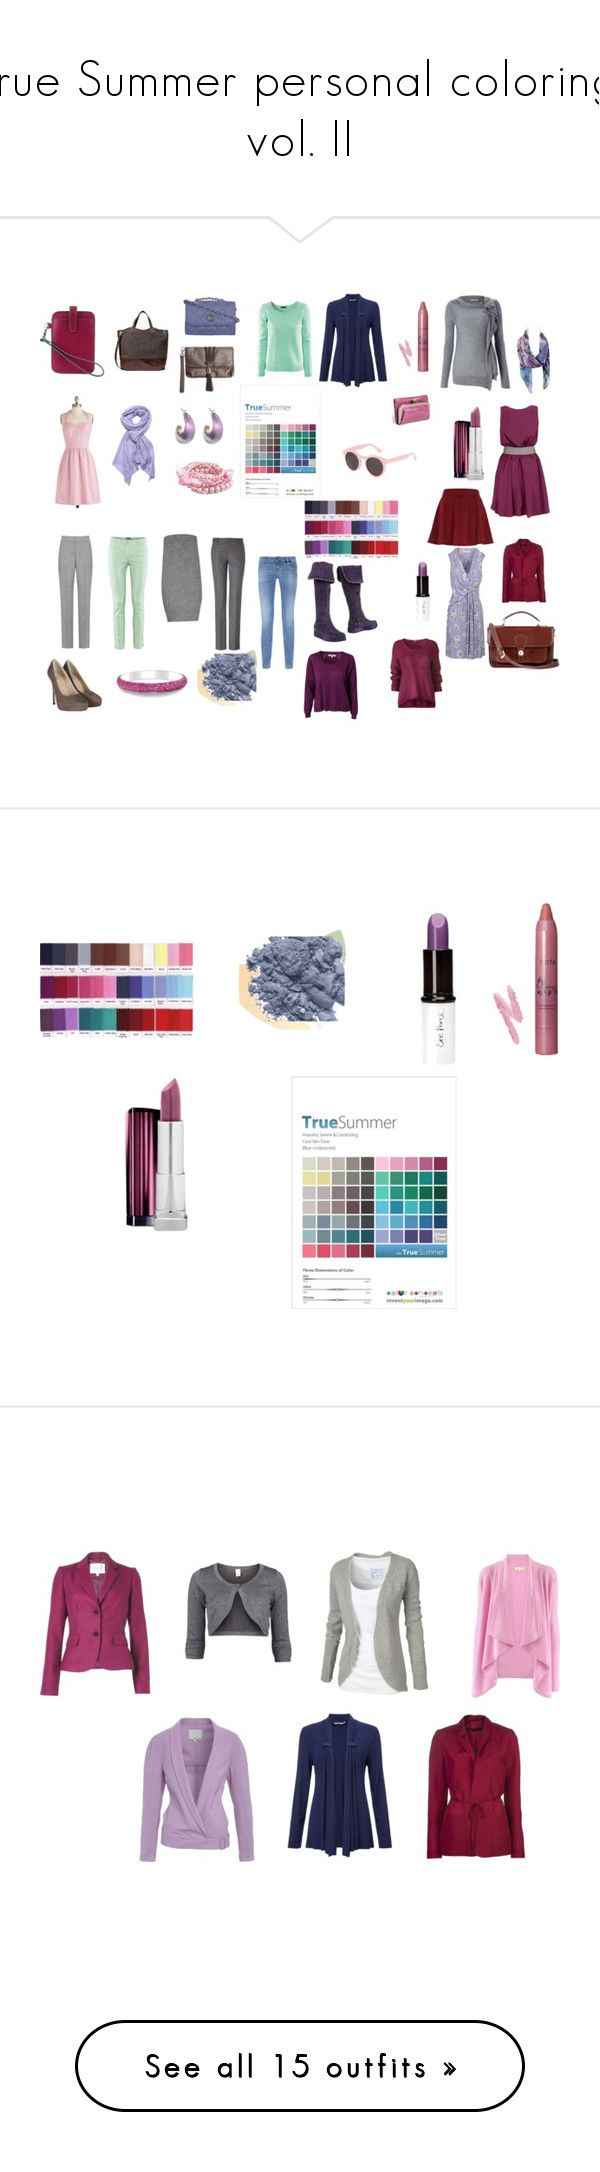 """""""True Summer personal coloring, vol. II"""" by in-vero-pulcritudo ❤ liked on Polyvore featuring tarte, INIKA, Whyred, River Island, Sole Society, The Row, Blugirl, DueDiTacchi, HOBO and Jane Carr"""